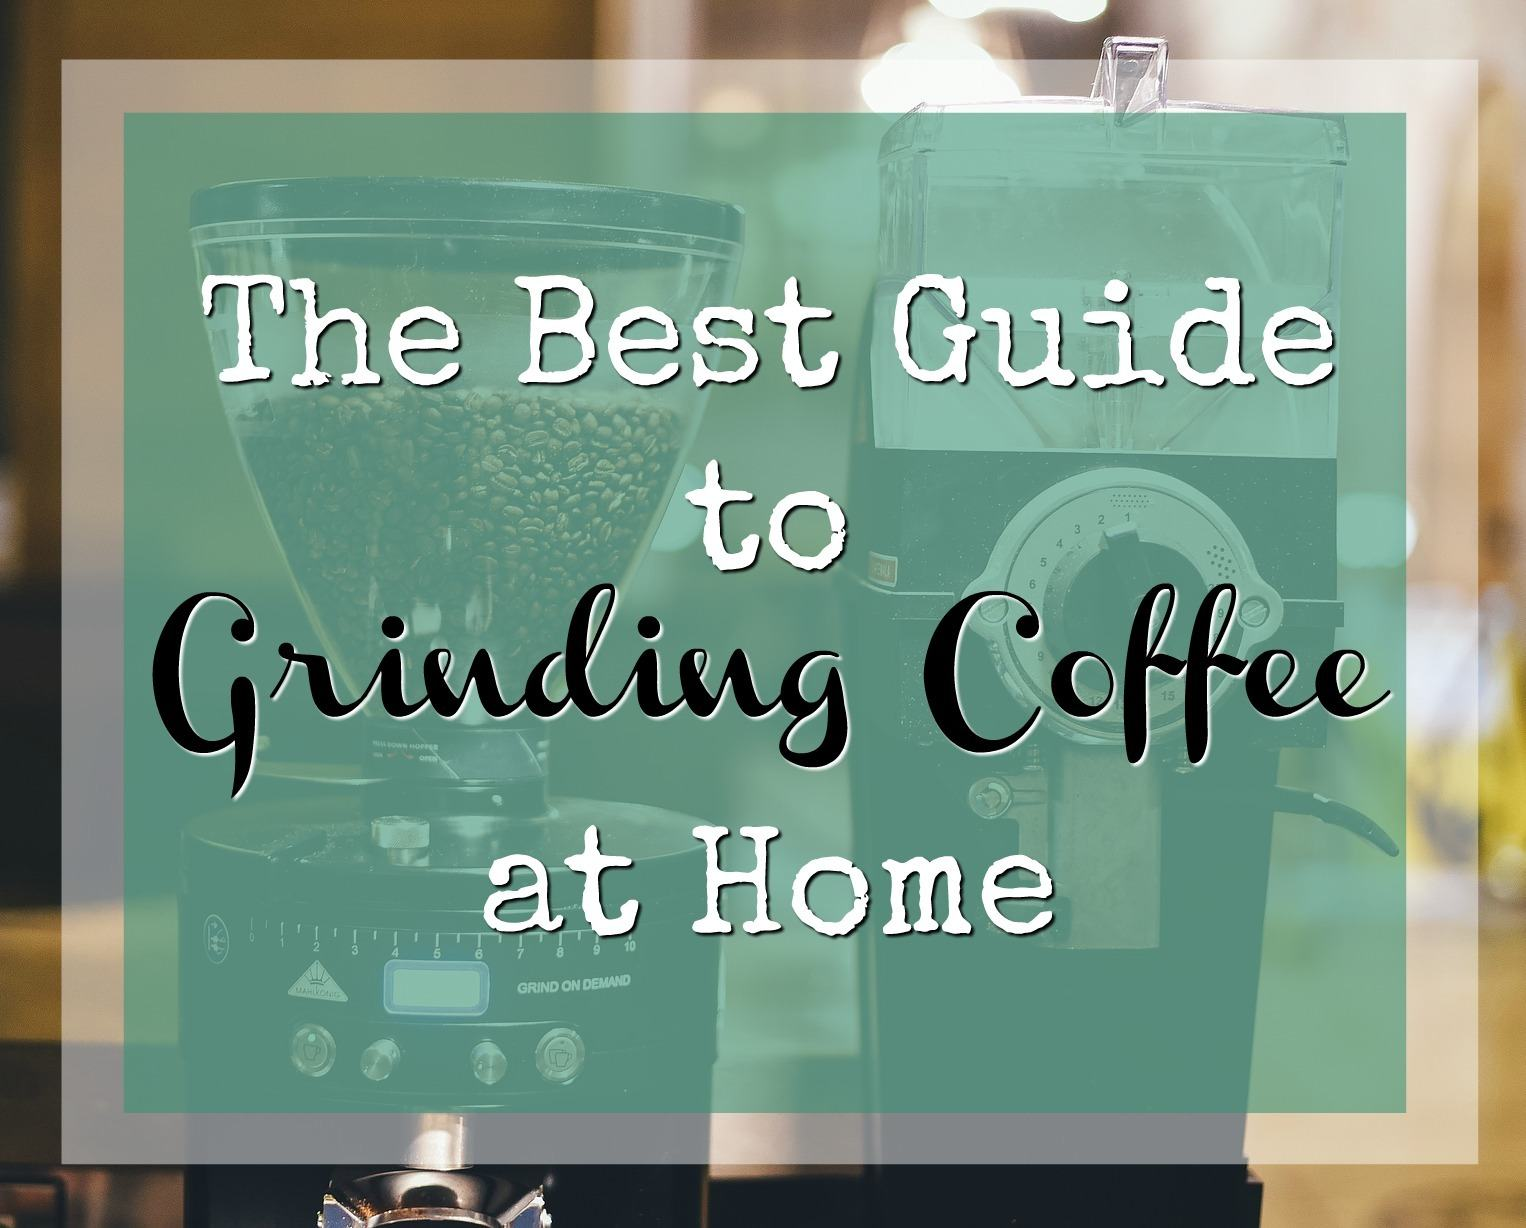 Grinding Coffee At Home